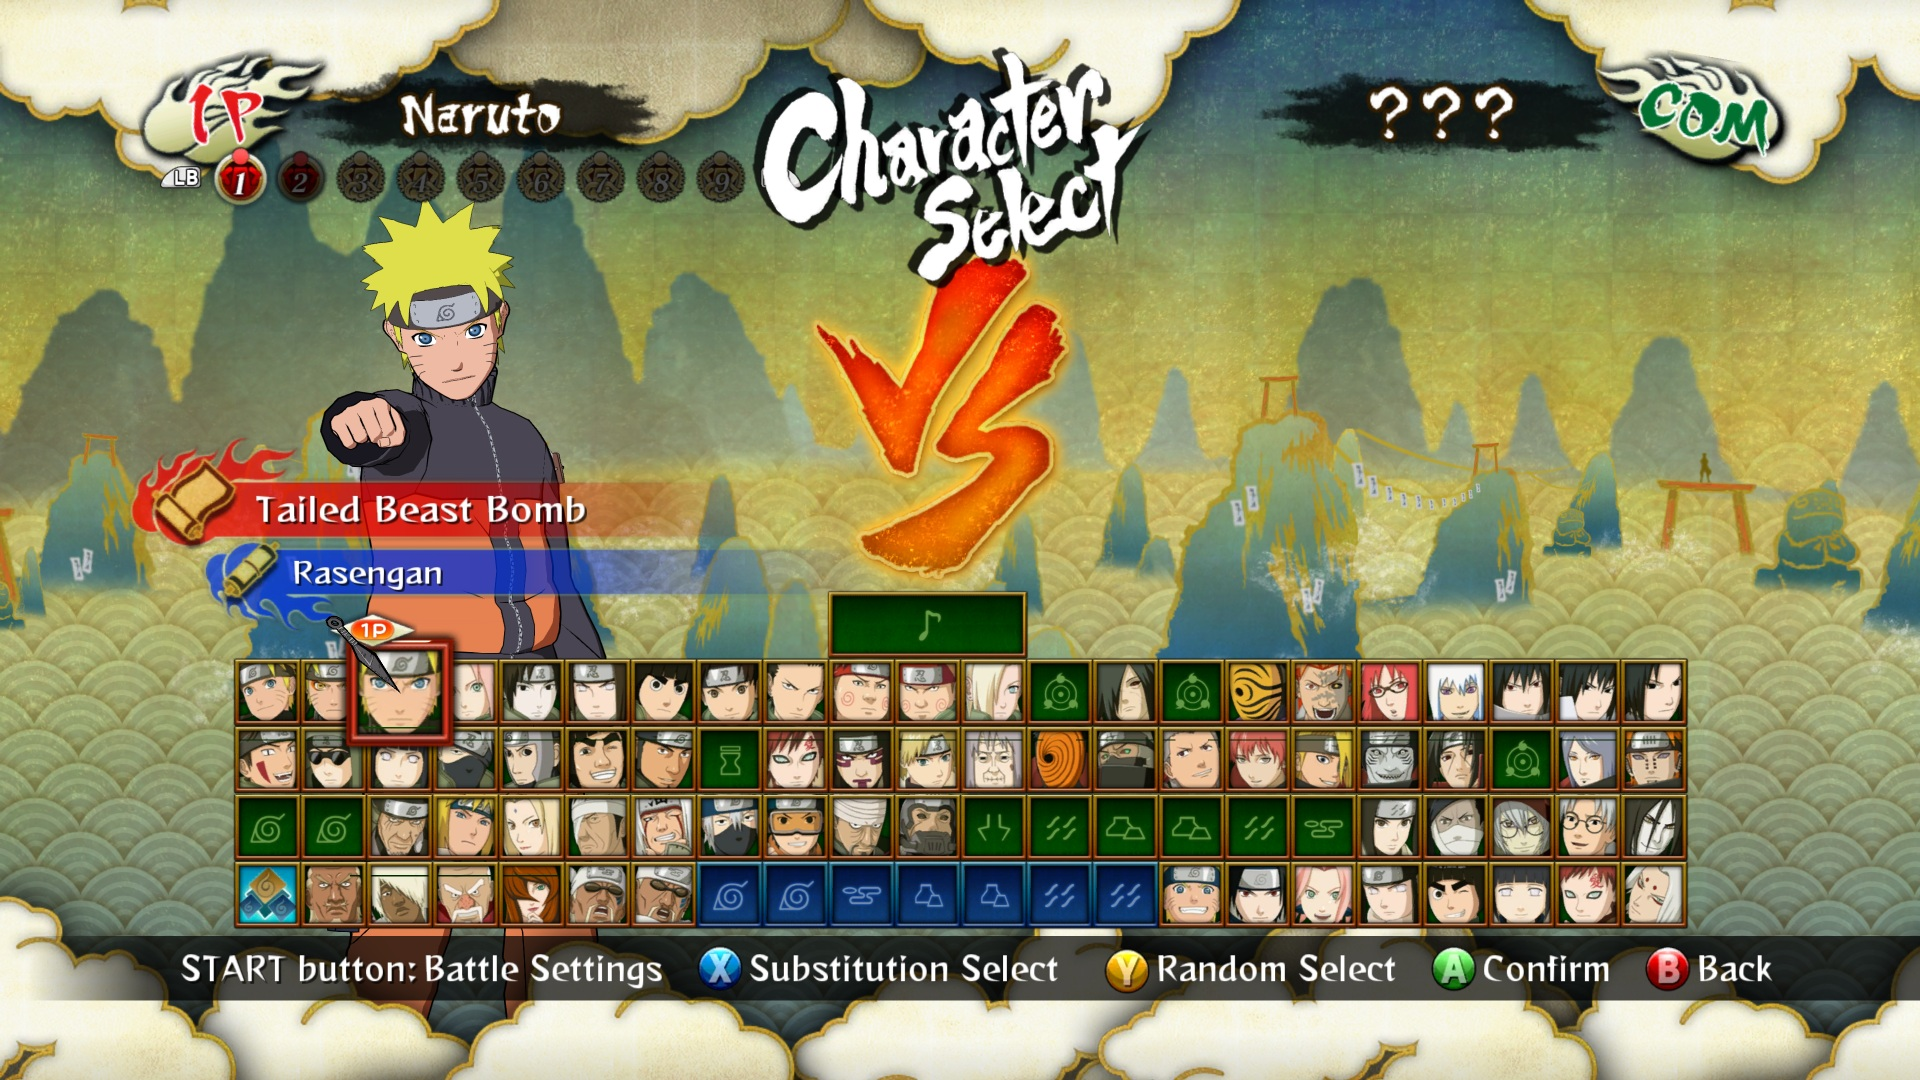 In this video I will be showing you my top 5 Over Powered Awakenings. These are all my personal opinion.Naruto Shippuden Ultimate Ninja Storm 3 - ALL Cutscenes…7:04:20youtube.com15. 5. 2013920 tis. zhlédnutíAll cutscenes, QTE's, Secret Factors & characters discussion from Naruto Shippuden: Ultimate Ninja Storm 3 compiled into a movie like…Naruto Shippuden: Ultimate Ninja Storm 3 FULL Russian Demo (HD…https://youtube.com/watch?v=CzL6gG3IbCENaruto Shippuden: Ultimate Ninja Storm 3 is Namco Bandai Games and CyberConnect2′s fourth entry in the Storm series. It will be available for the Sony PlaySt...